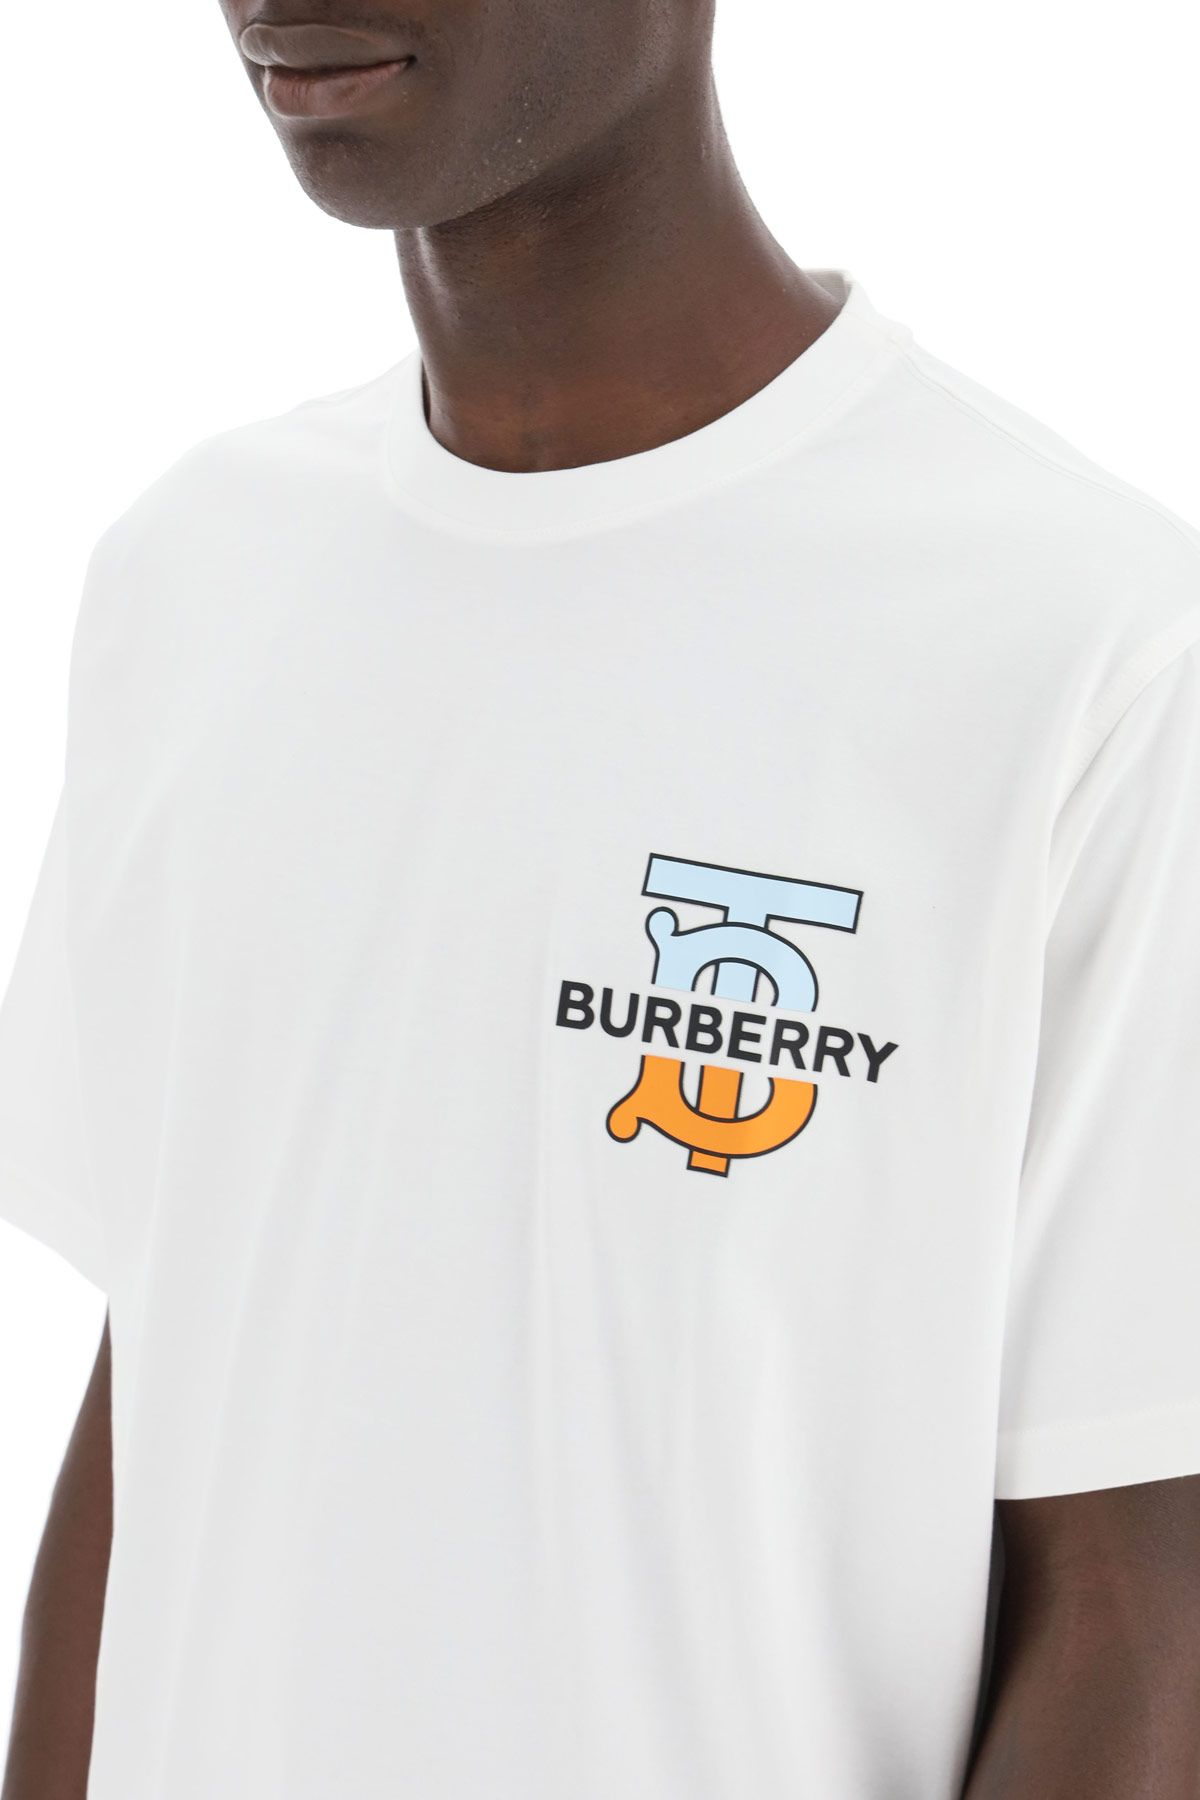 burberry clothing men ganther t-shirt with logo